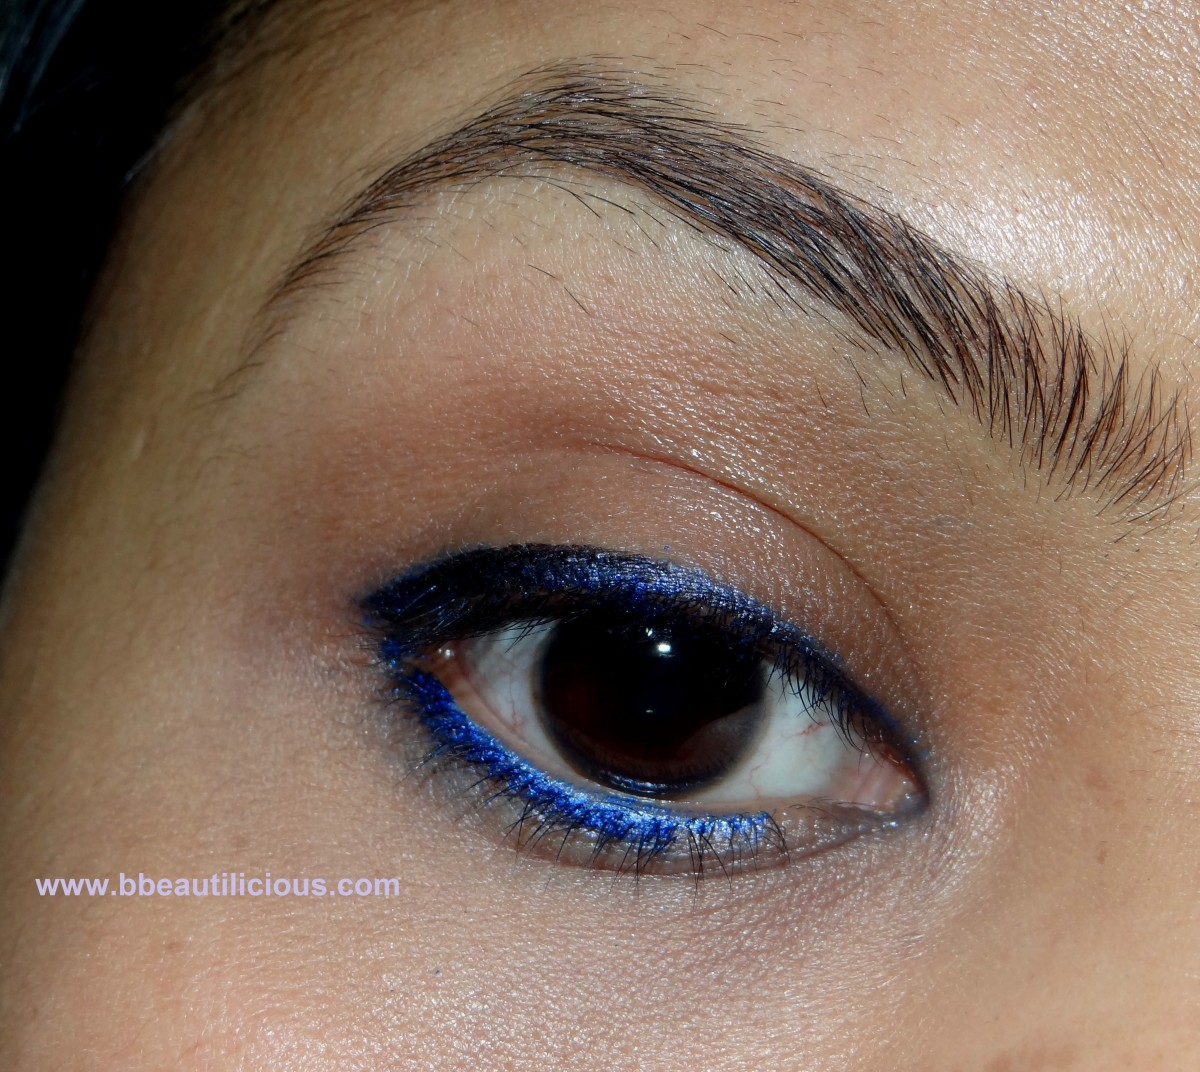 bourjois contour clubbing waterproof eyeliner pencil bleu neon swatches and review